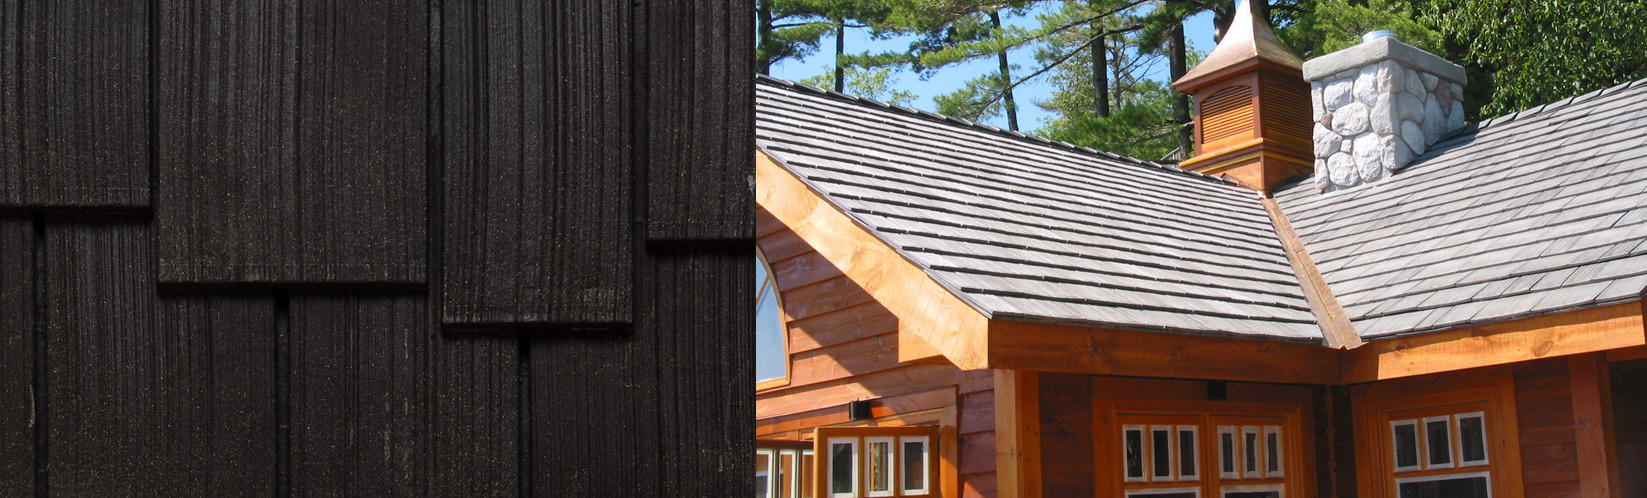 Roofing Shakes